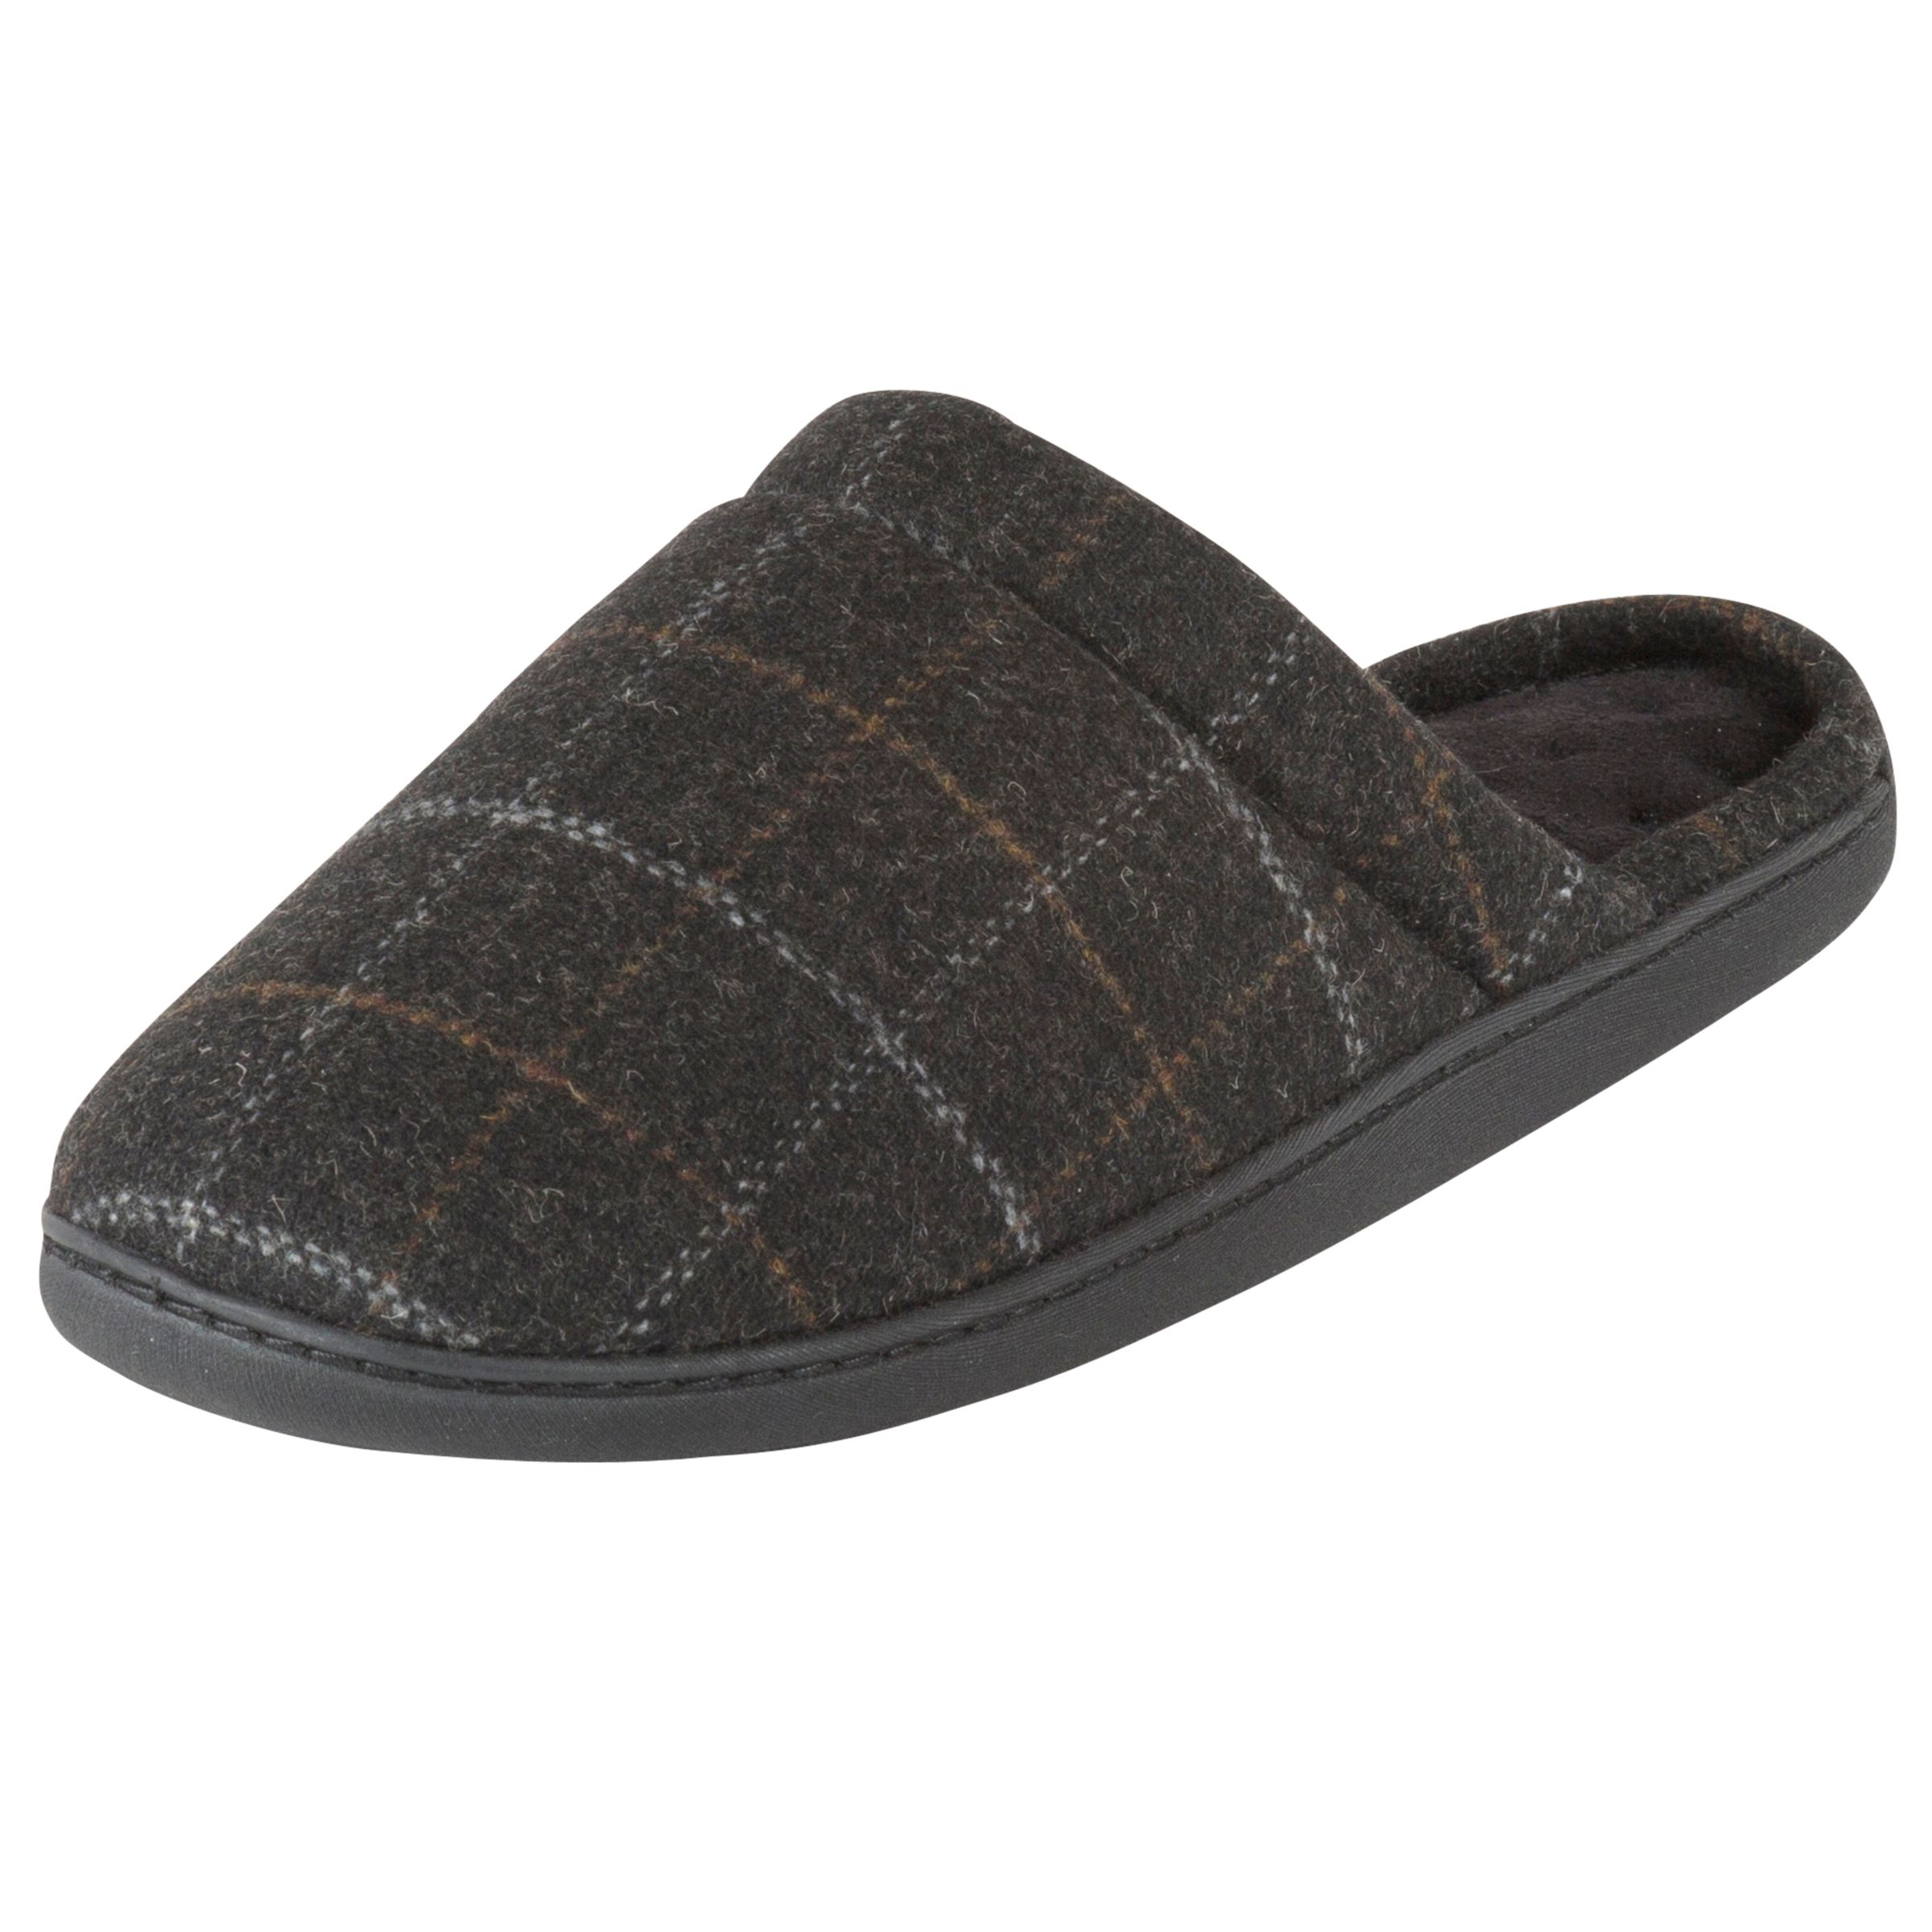 Totes Totes Woven Checked Mule Slippers, Charcoal